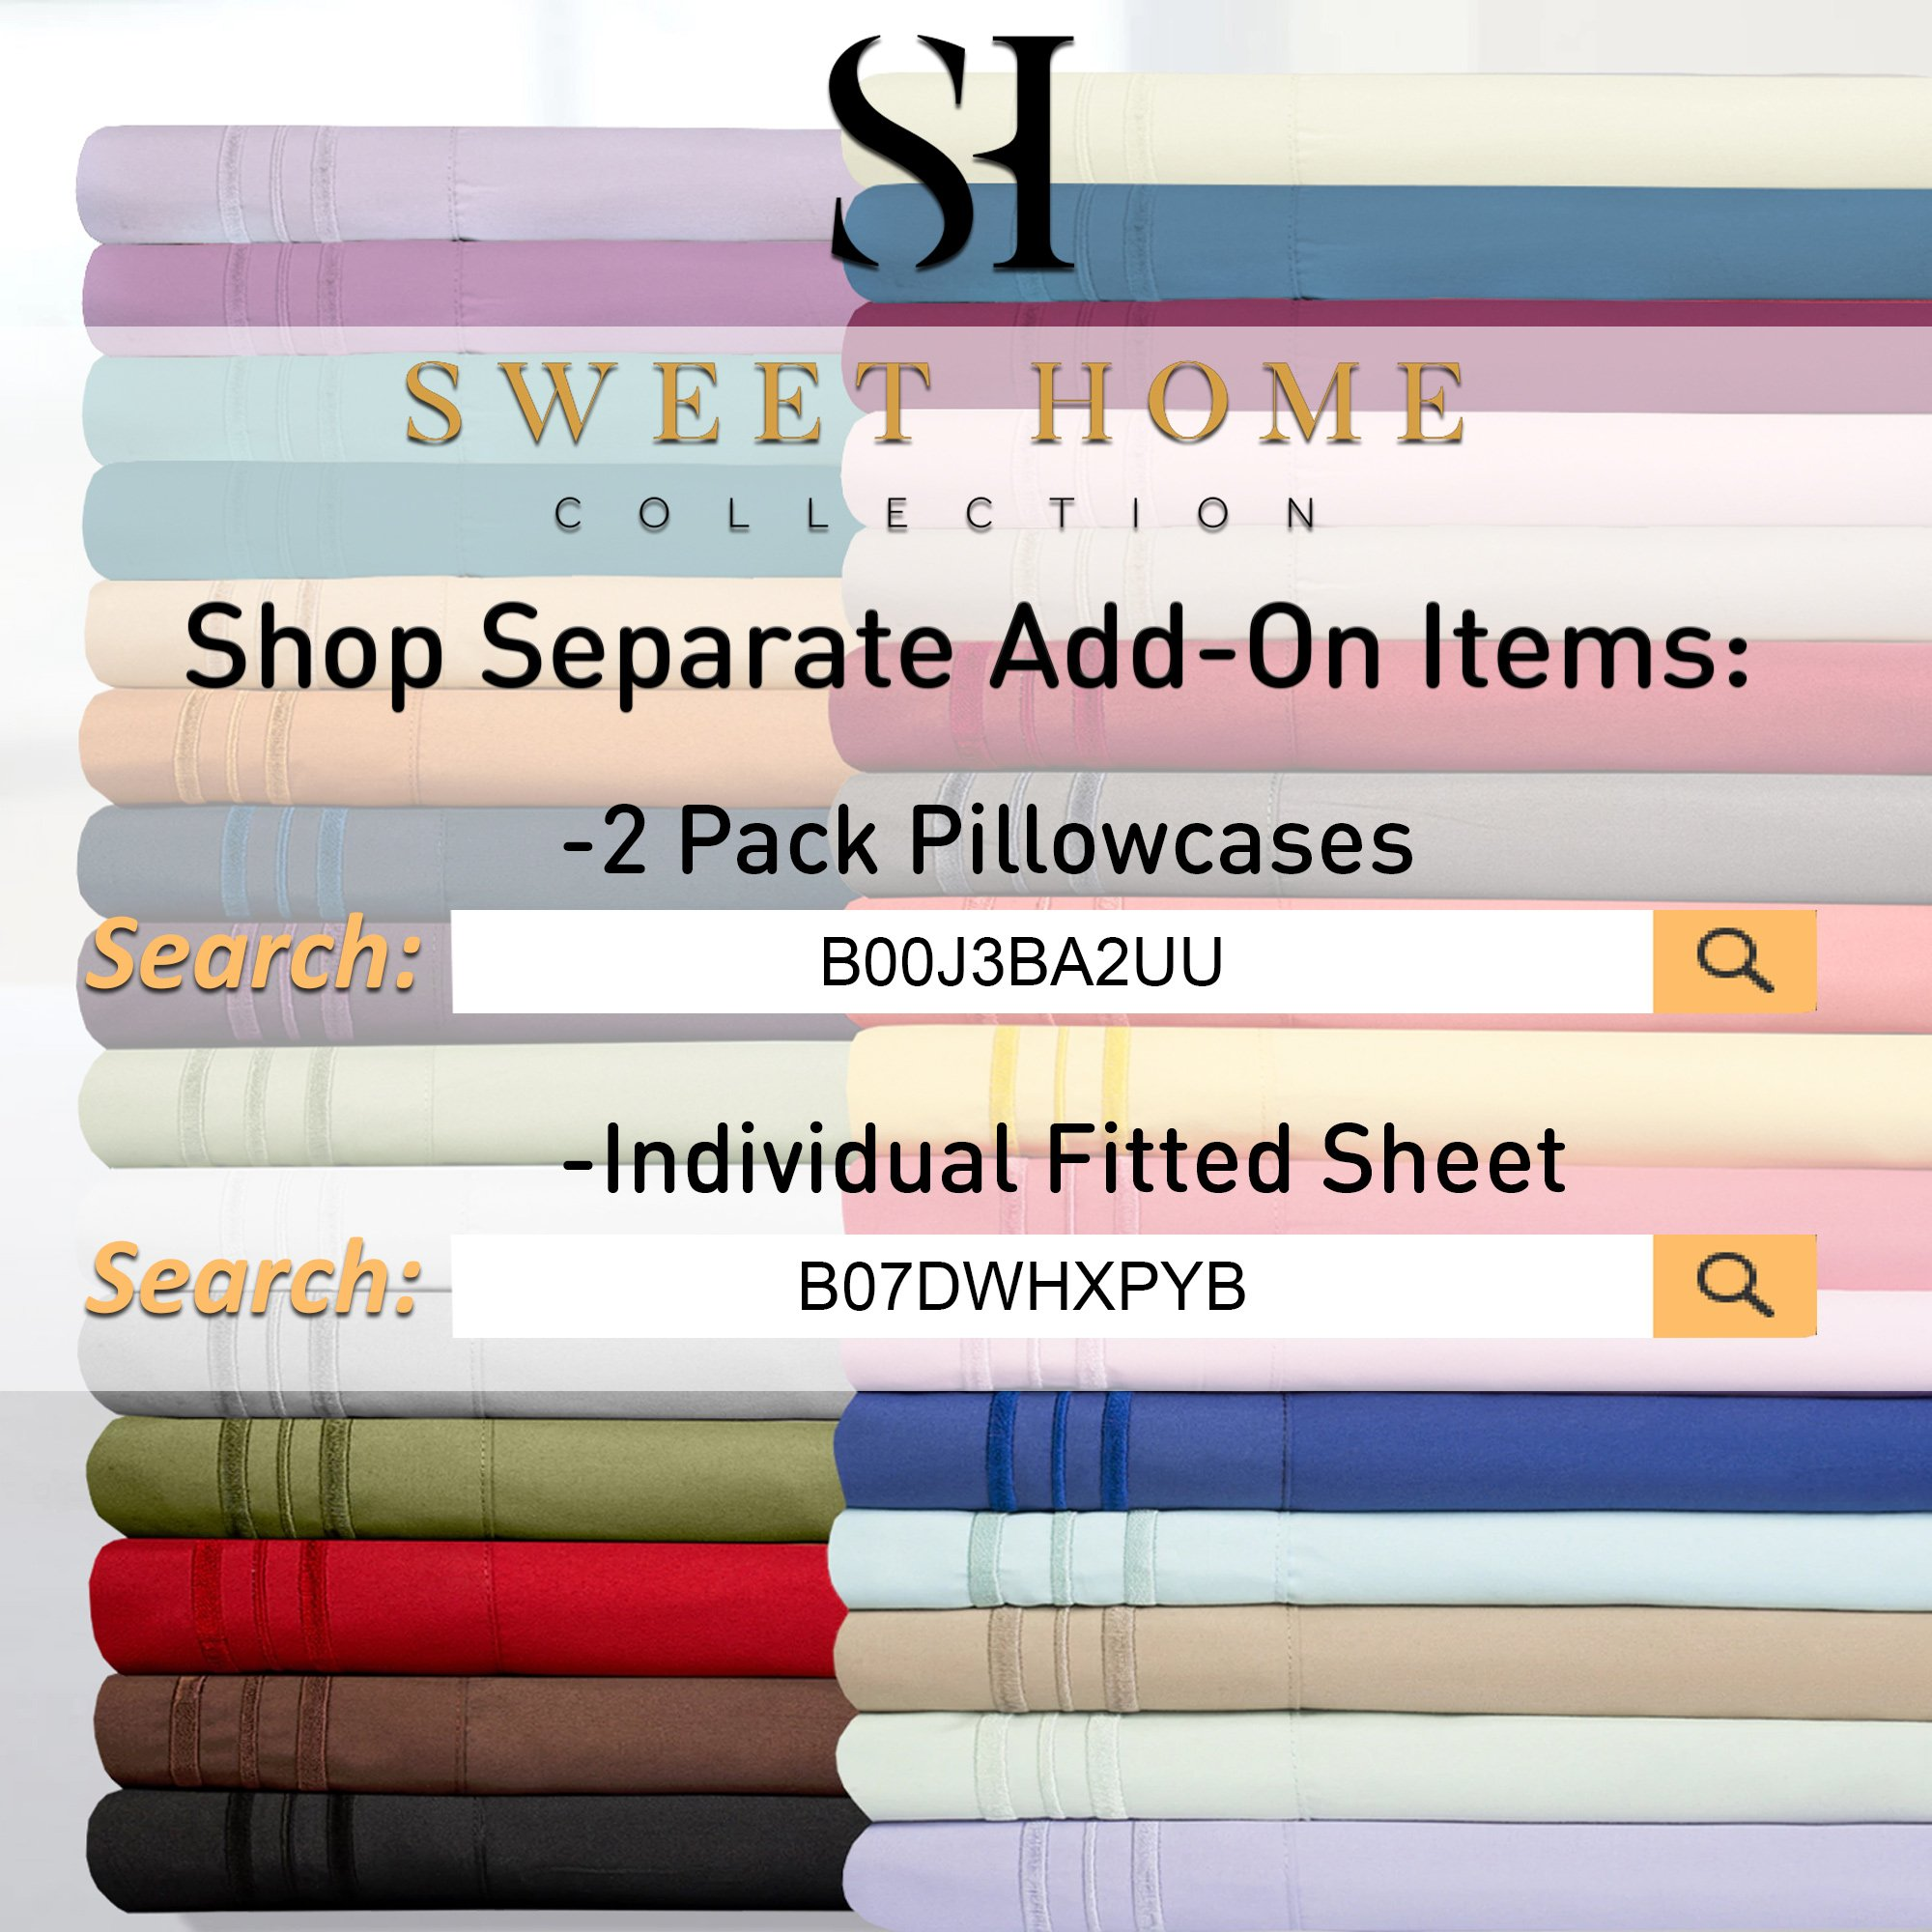 1500 Supreme Collection Extra Soft King Sheets Set, Light Blue - Luxury Bed Sheets Set With Deep Pocket Wrinkle Free Hypoallergenic Bedding, Over 40 Colors, King Size, Light Blue by Sweet Home Collection (Image #8)